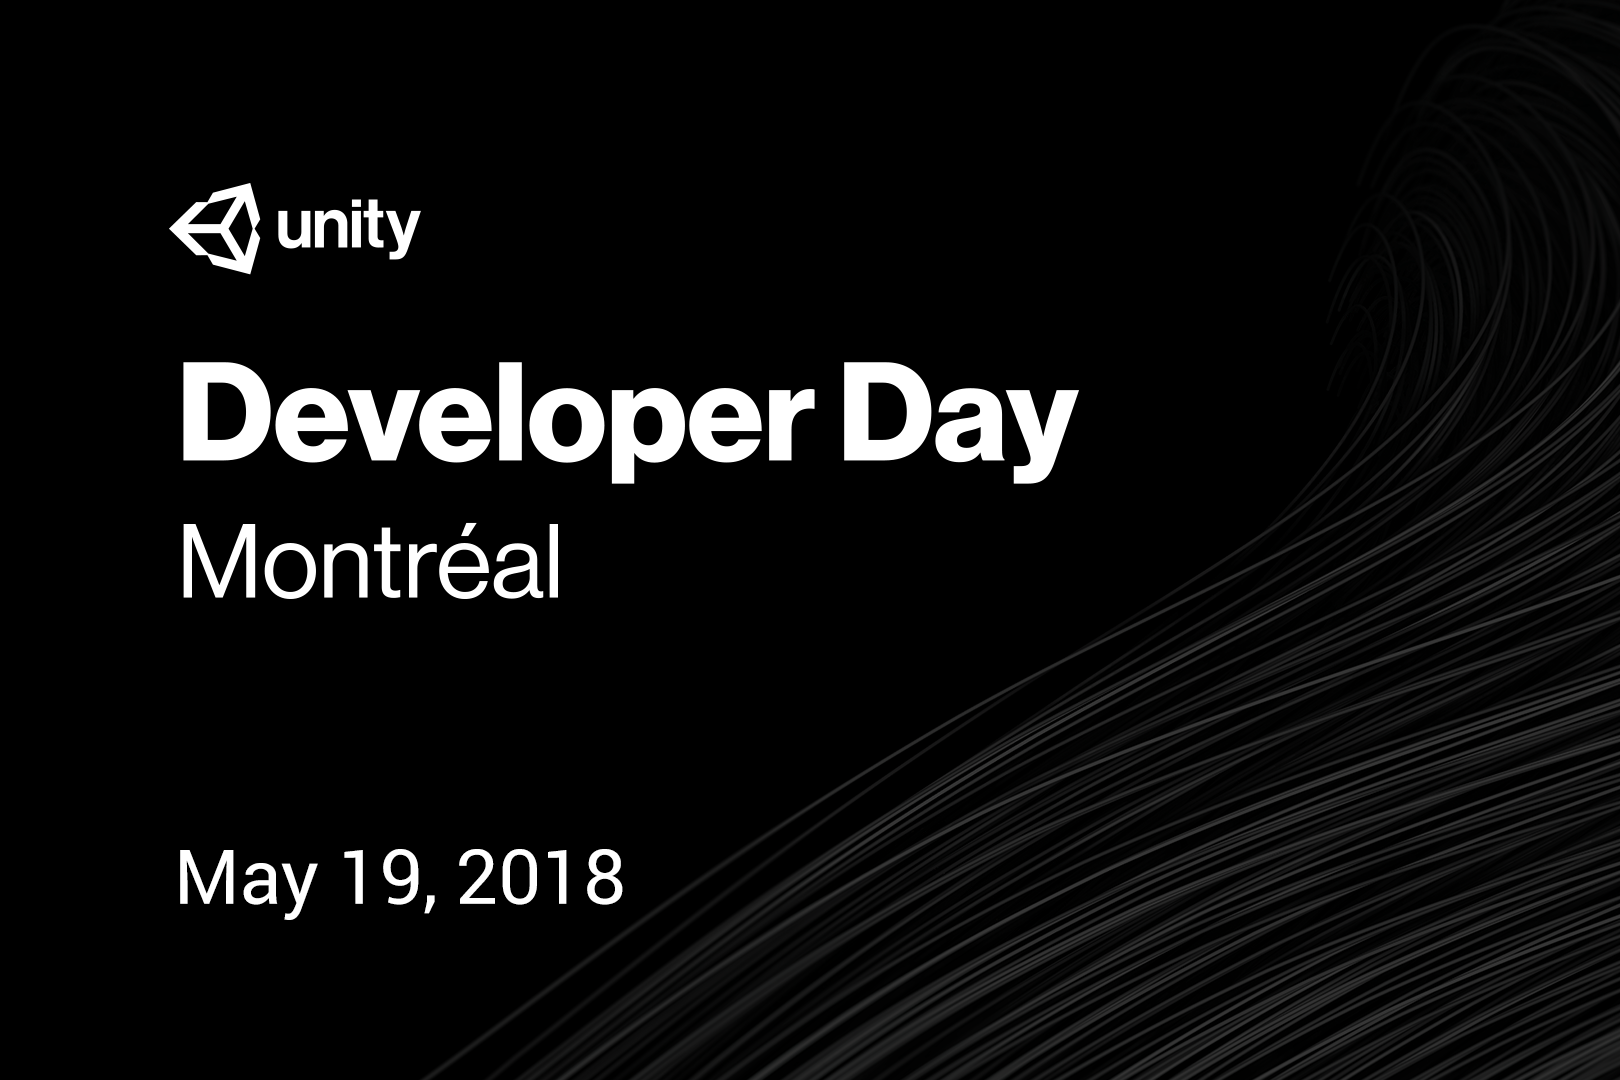 Unity Developer Day: Montréal 2018